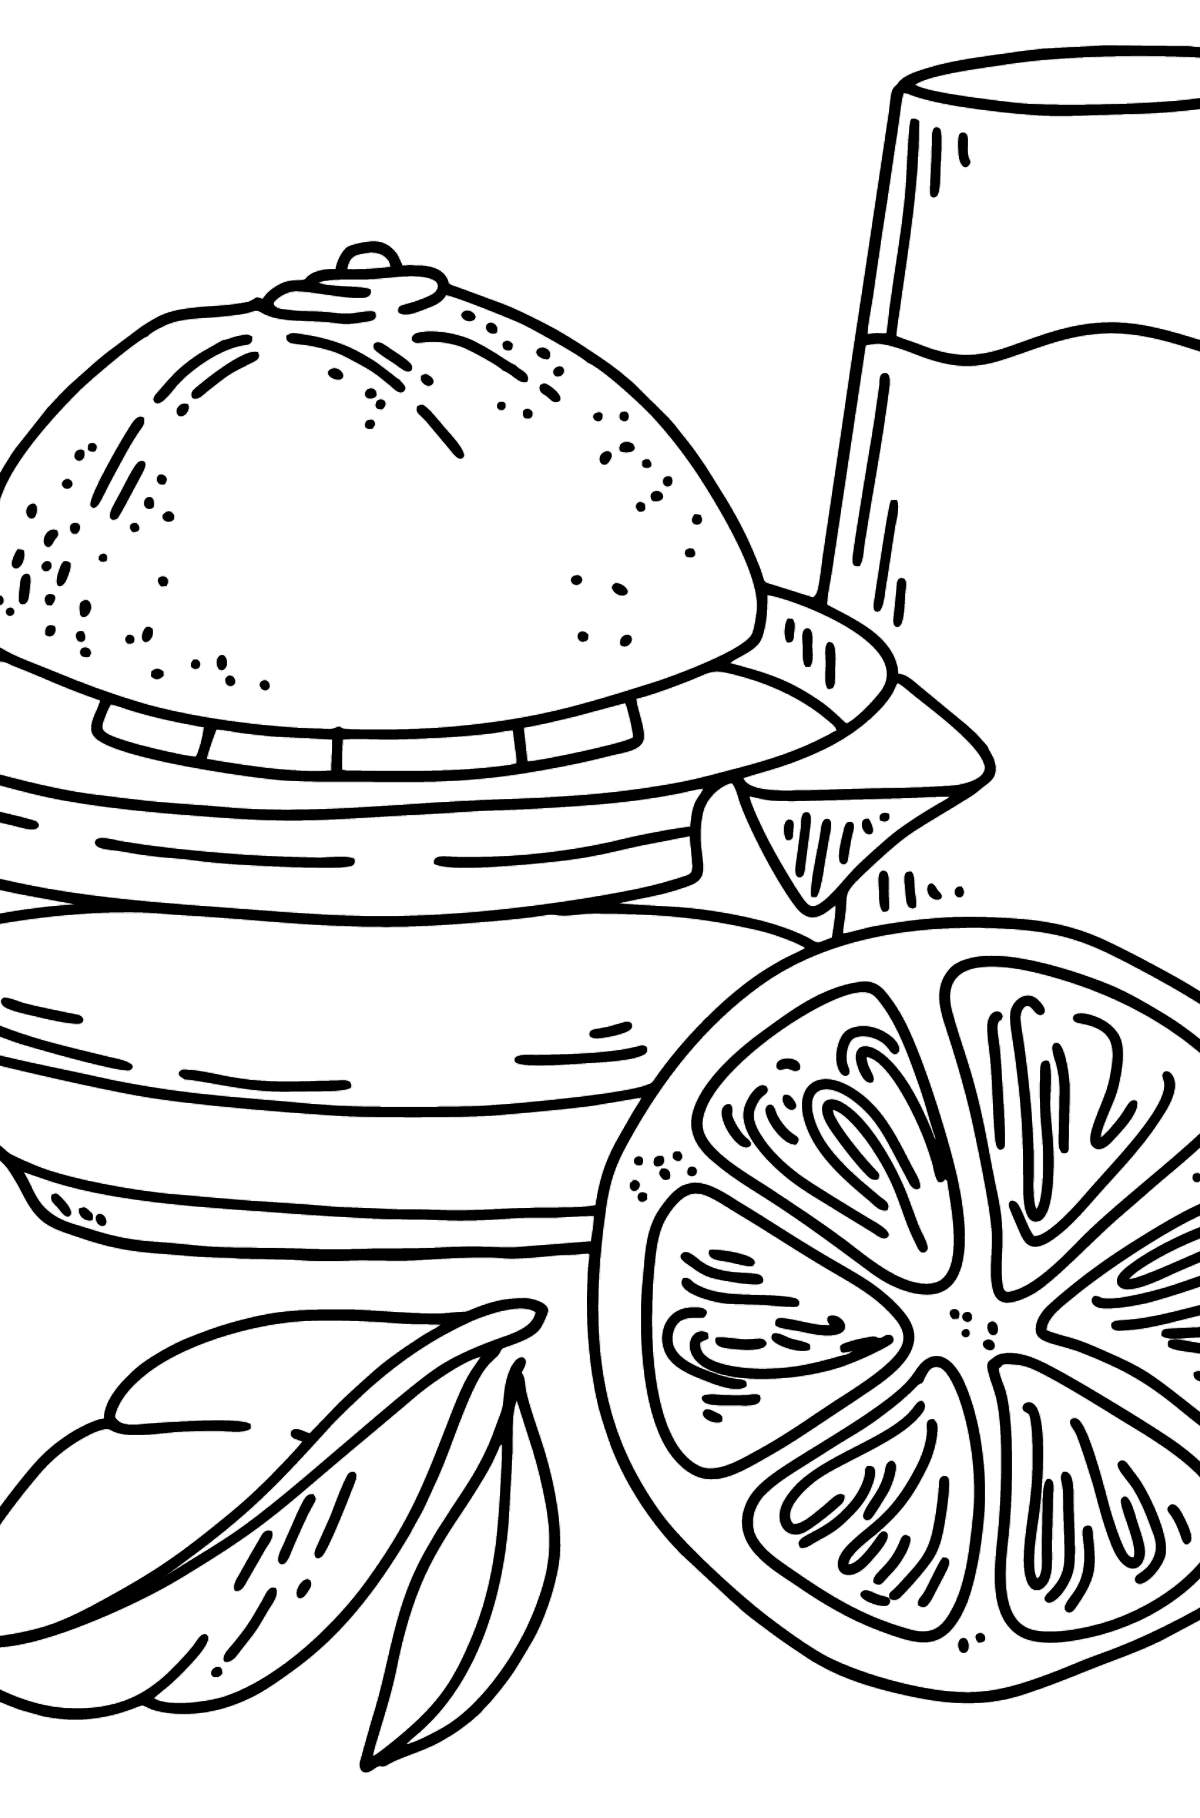 Orange Juice coloring page - Coloring Pages for Kids